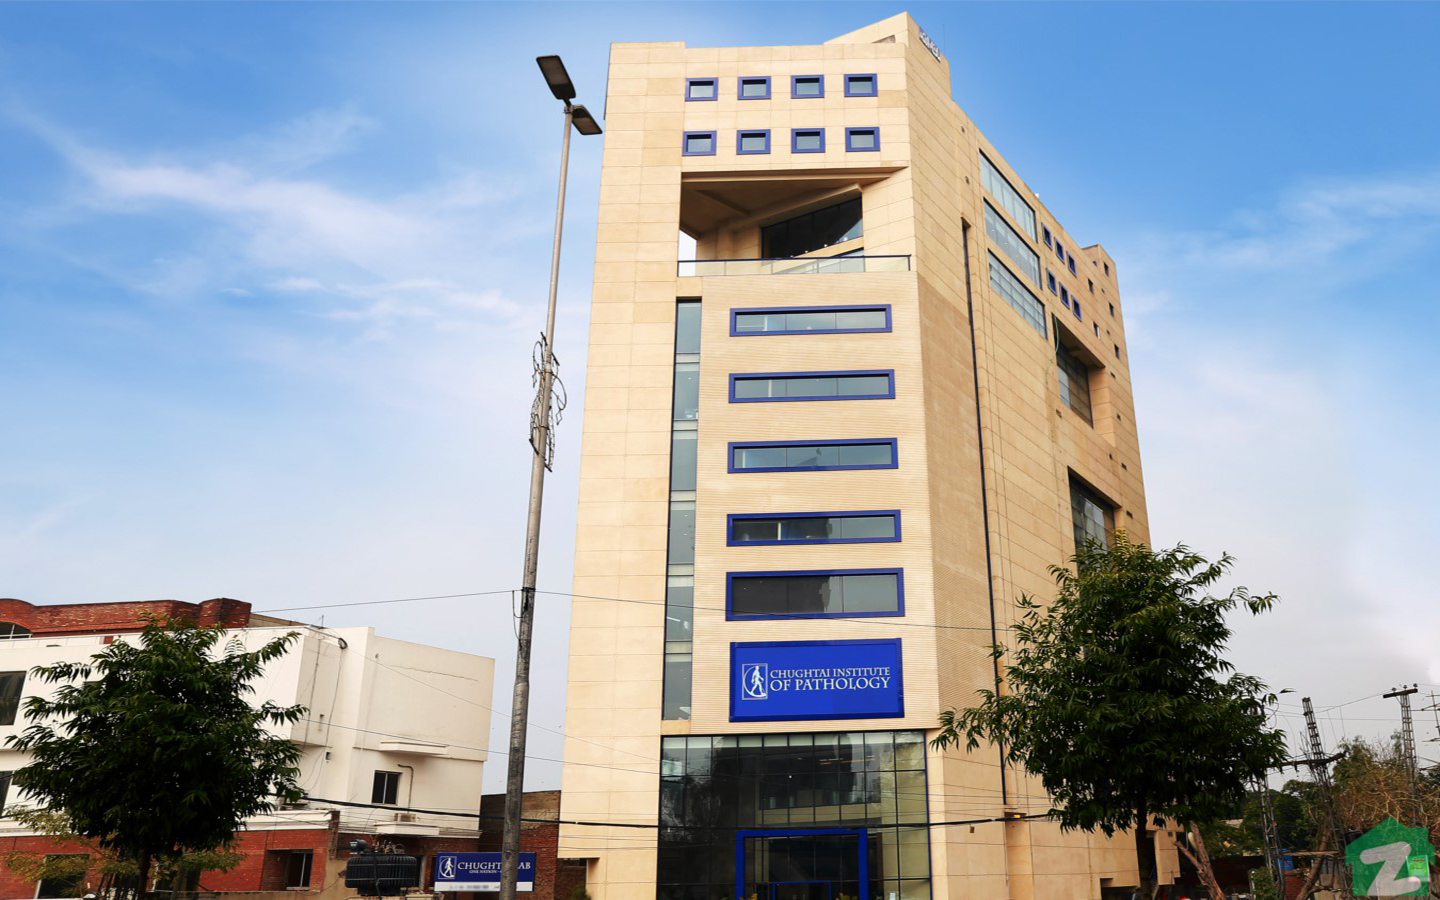 Those who want to study in the medical field can take admission in Chughtai Institute of Pathology in Gulberg V.